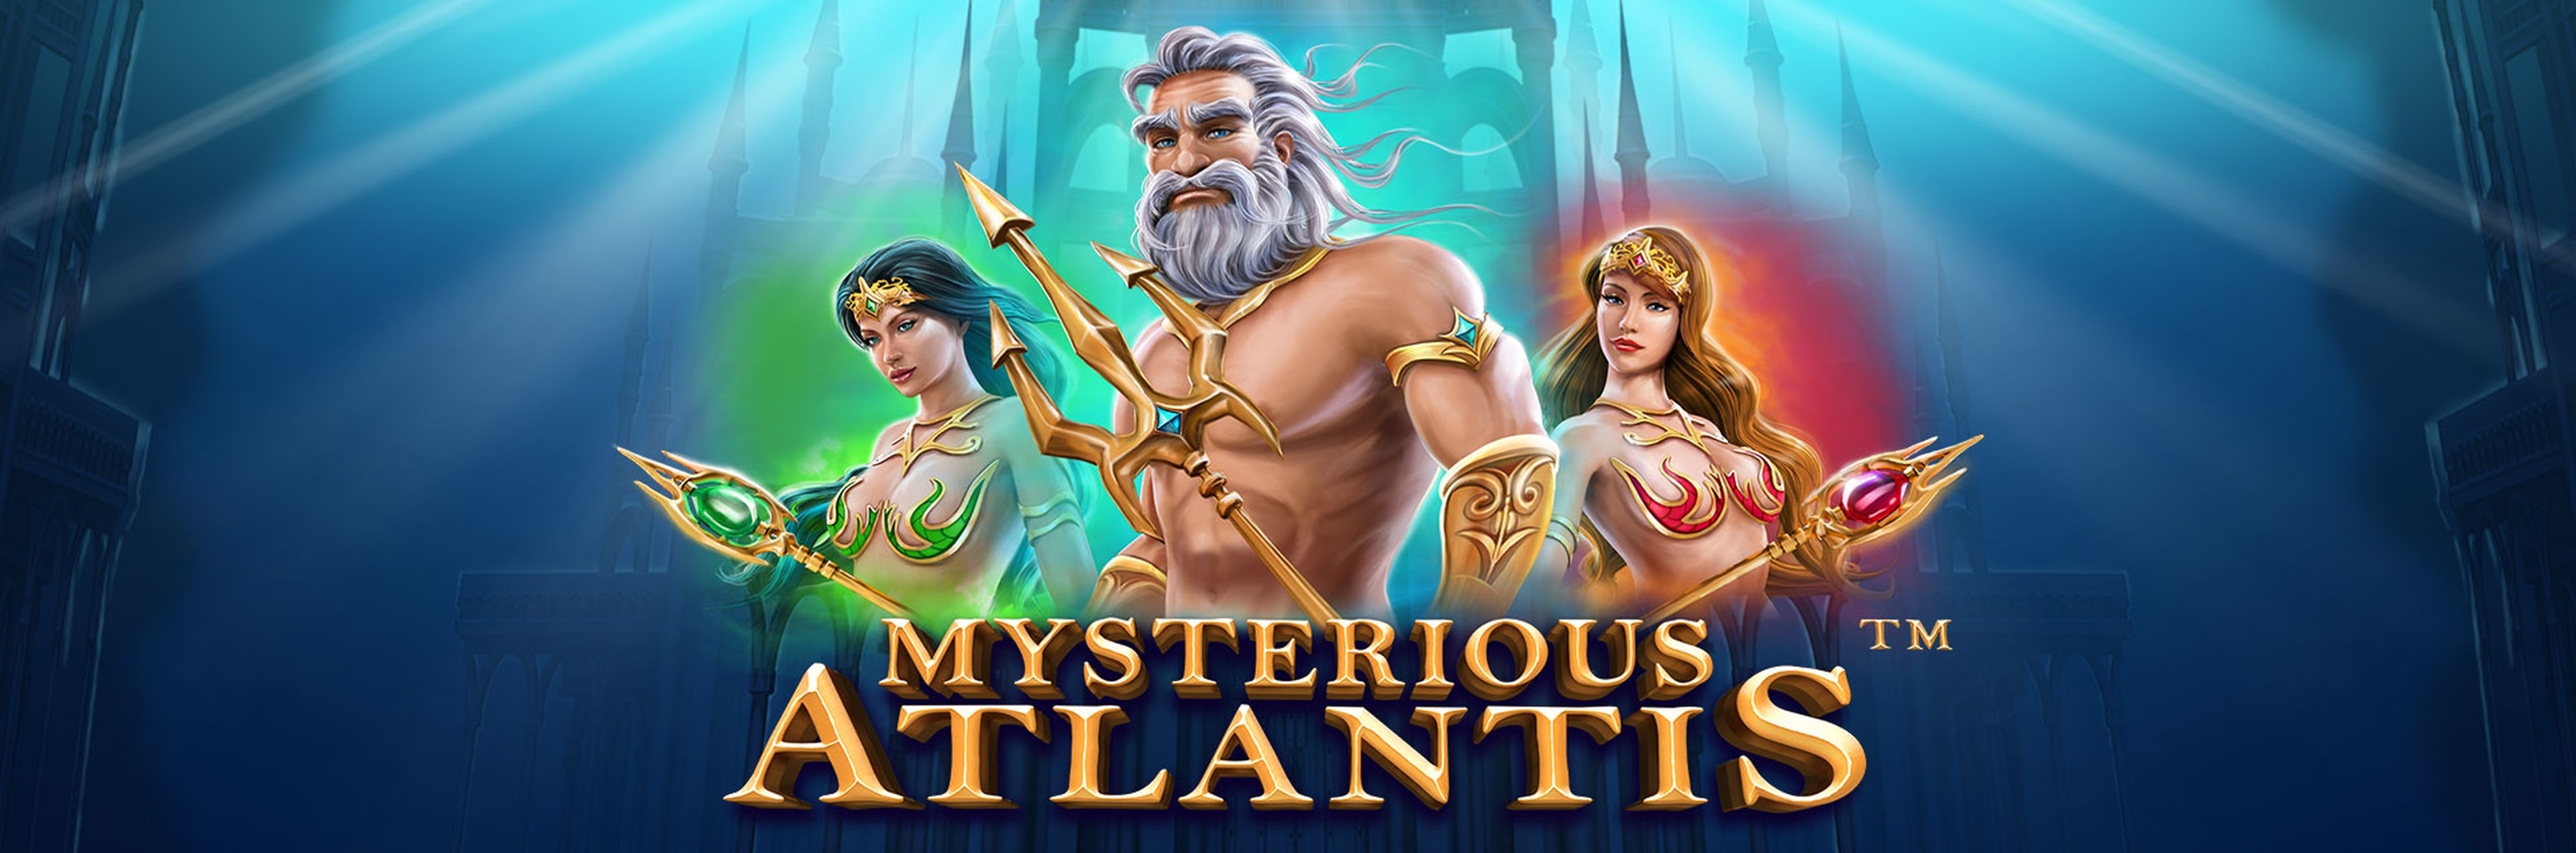 The Mysterious Atlantis Online Slot Demo Game by Synot Games